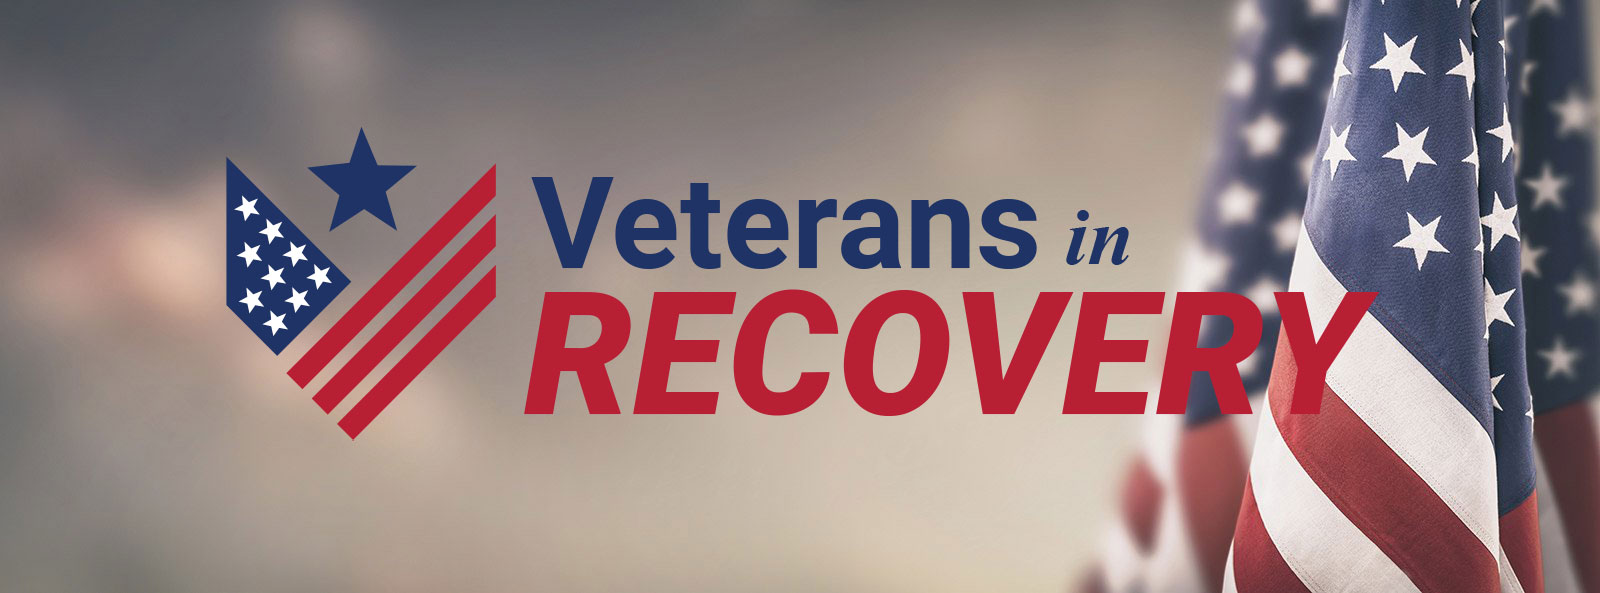 Veterans in Recovery | Clearbrook Treatment Centers